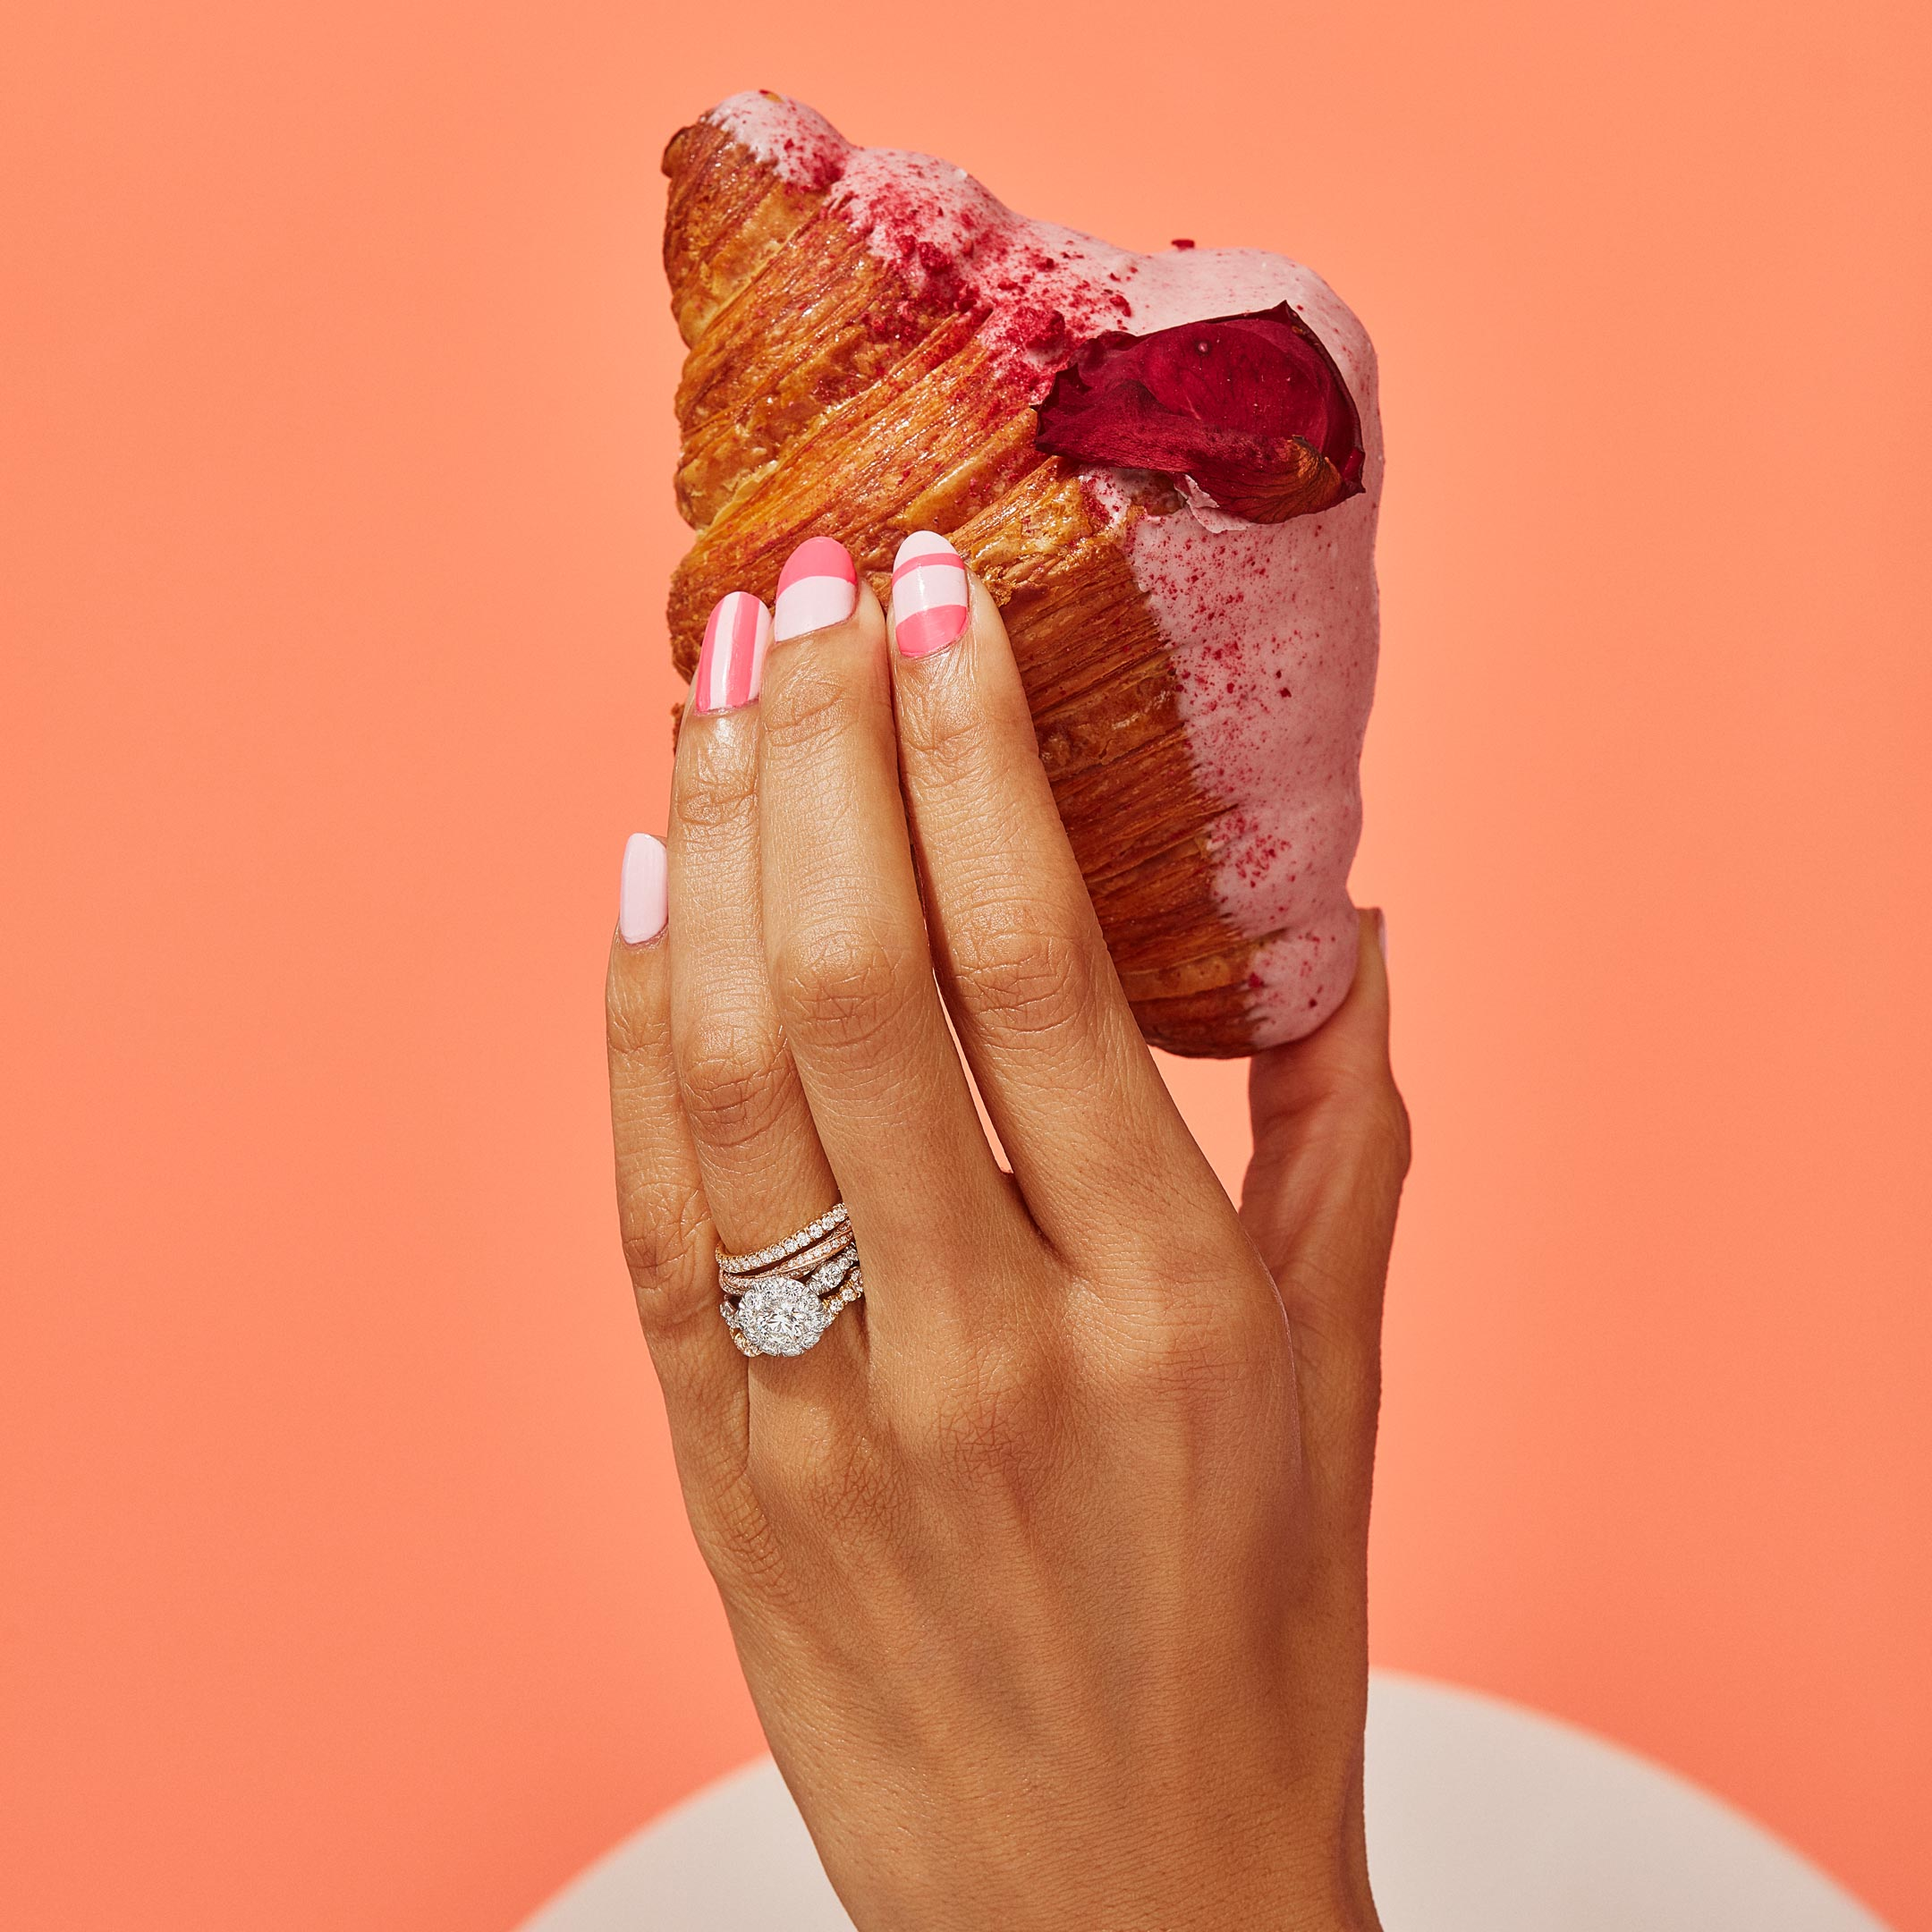 Yvonne Round Brilliant Seamless Solitaire™ Engagement Ring with a diamond pavé wave band in Platinum Hand with Pastry Lifestyle by Oui by Jean Dousset